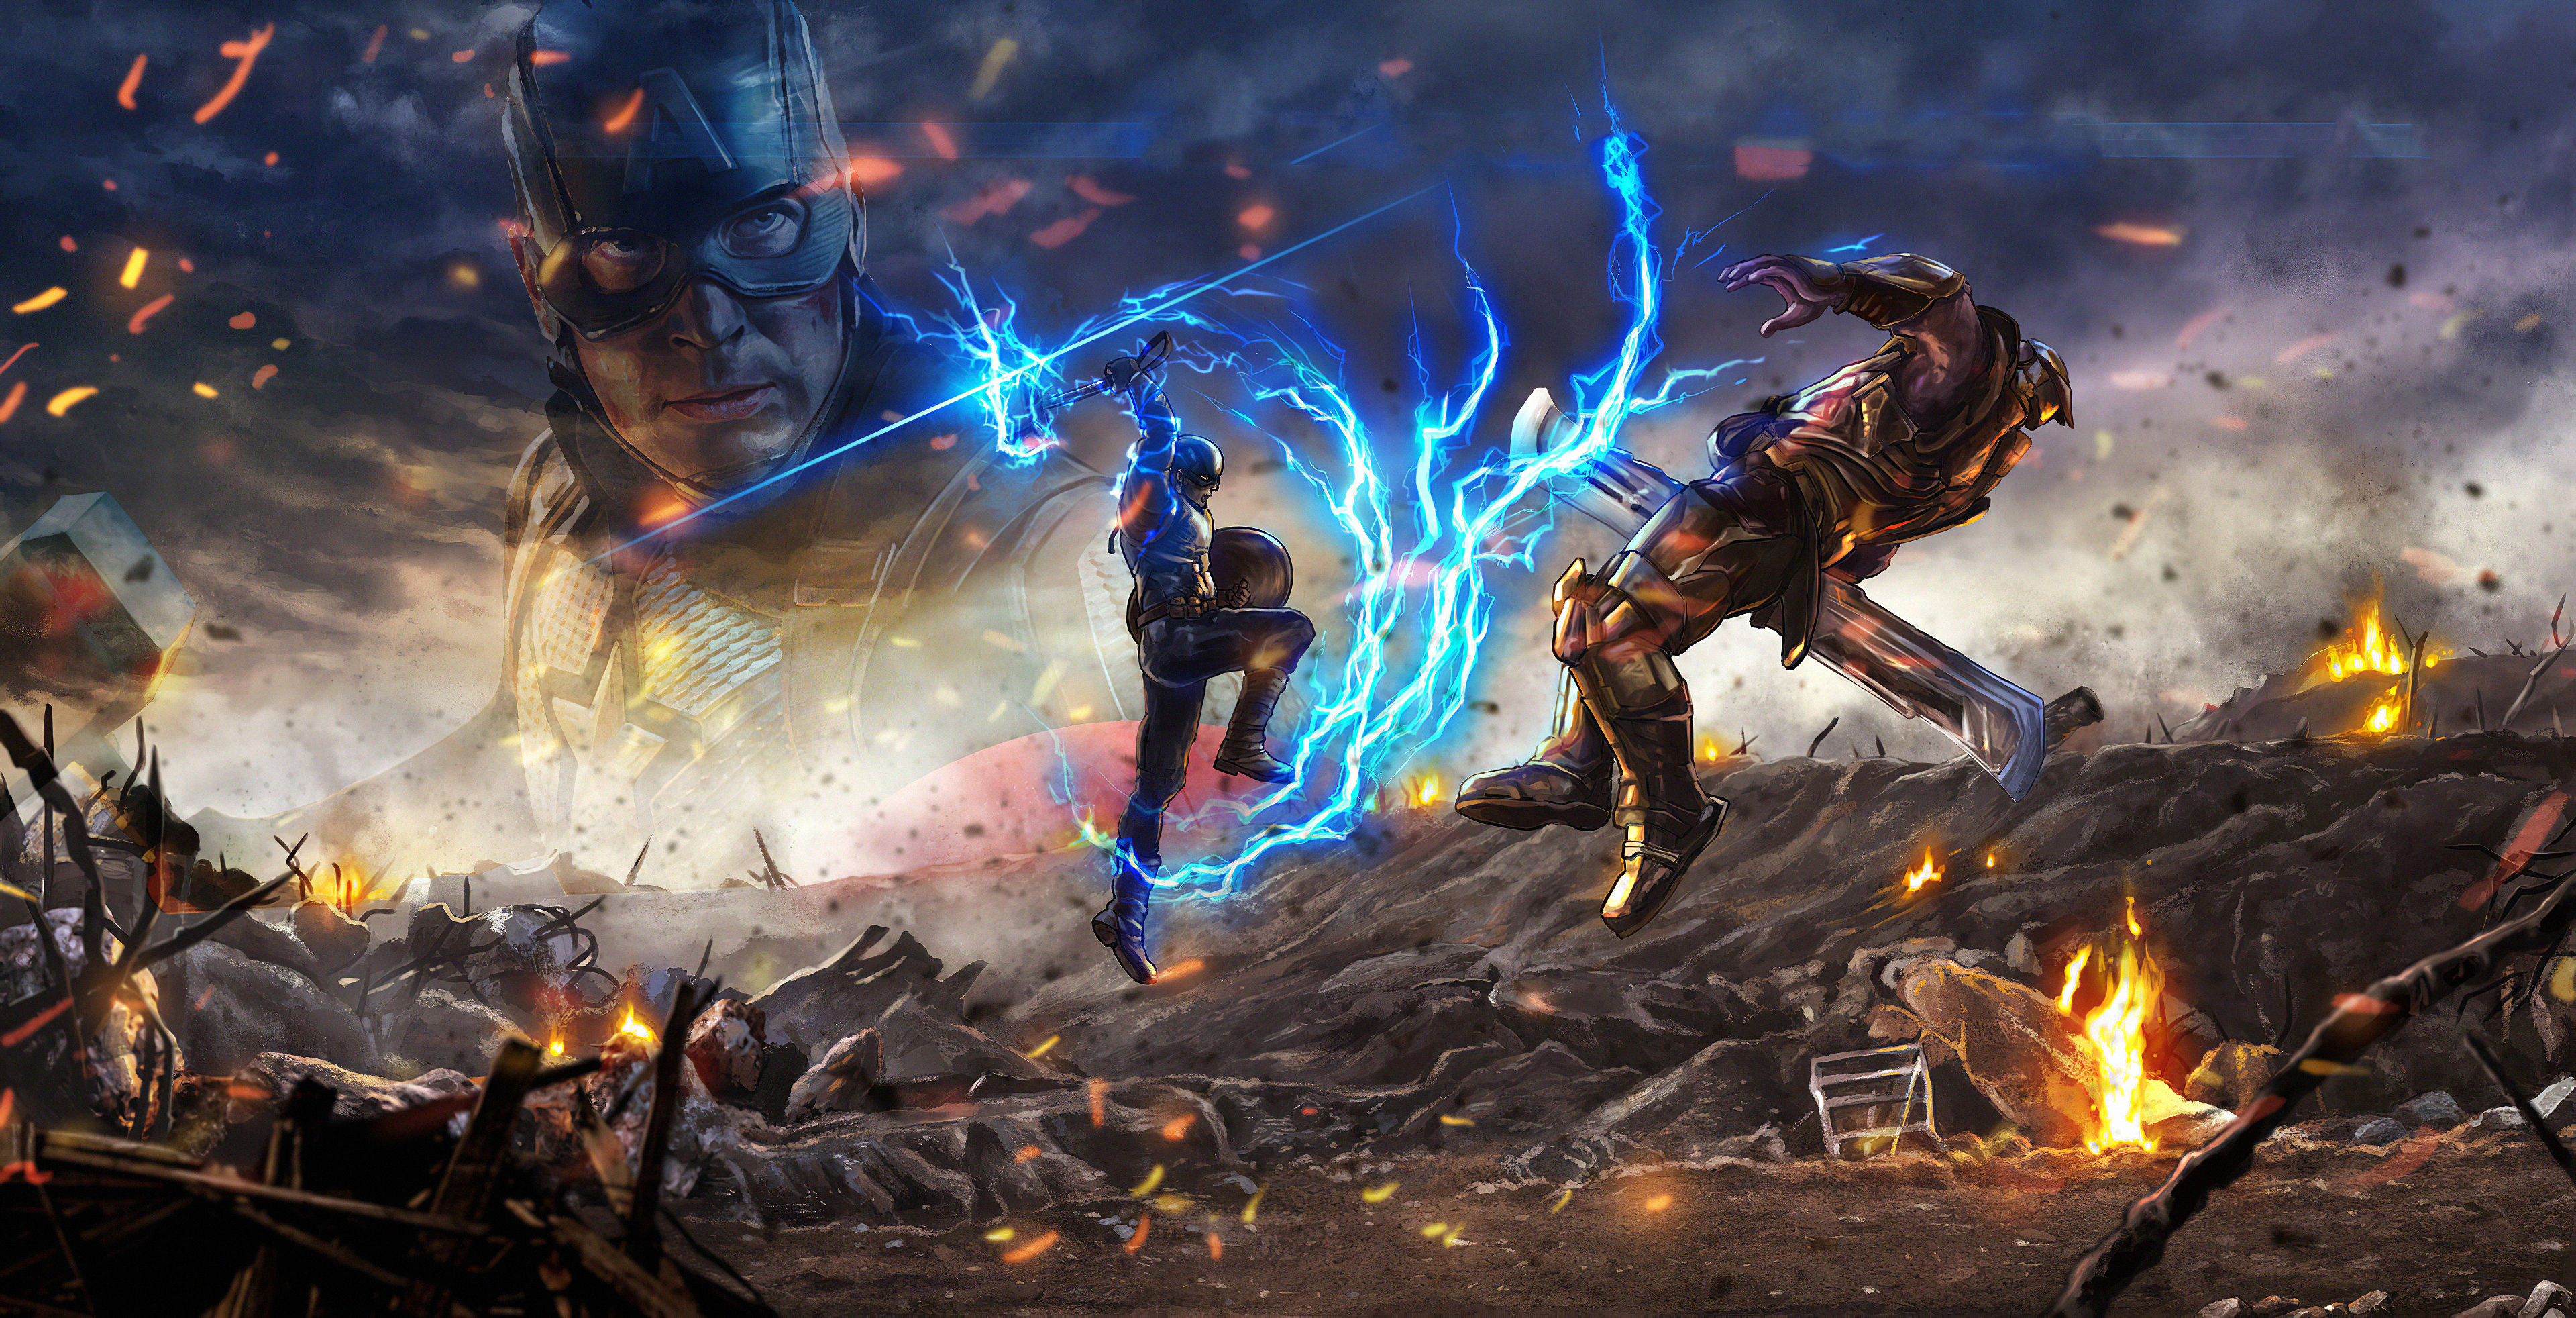 Captain America Vs Thanos Hd Superheroes 4k Wallpapers Images